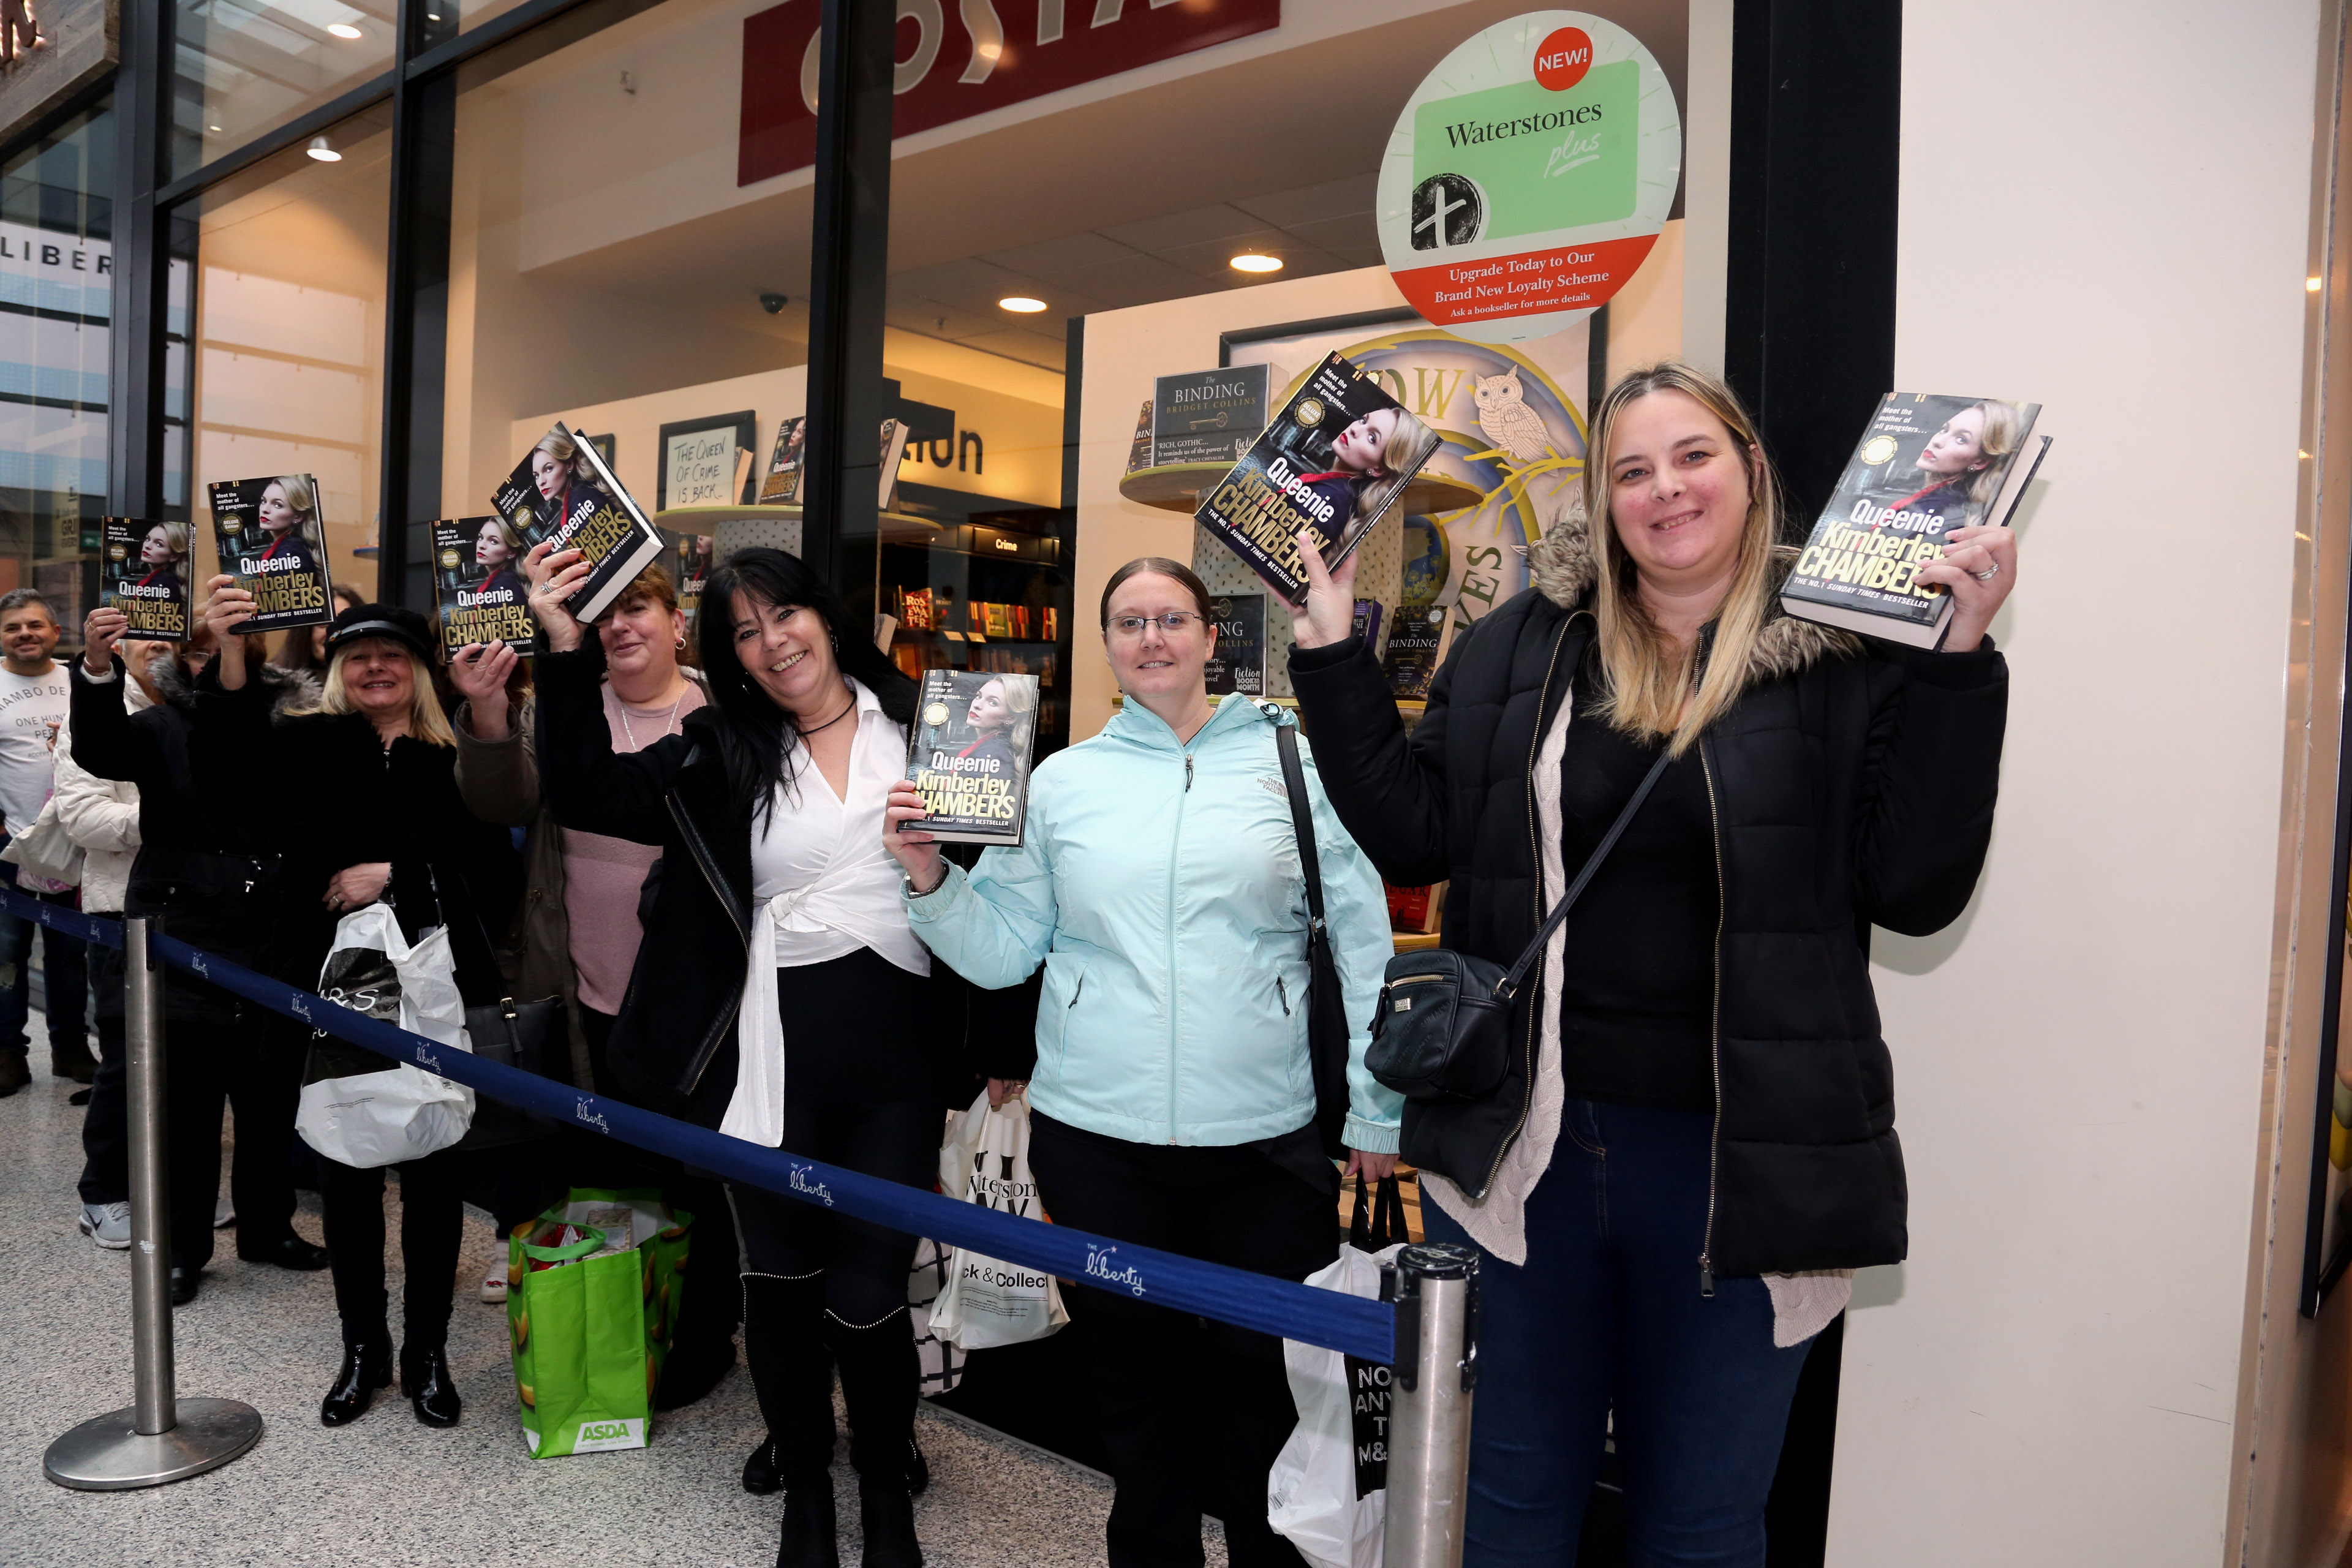 Kimberley Chambers Book Signing (Photo by Sandra Rowse)